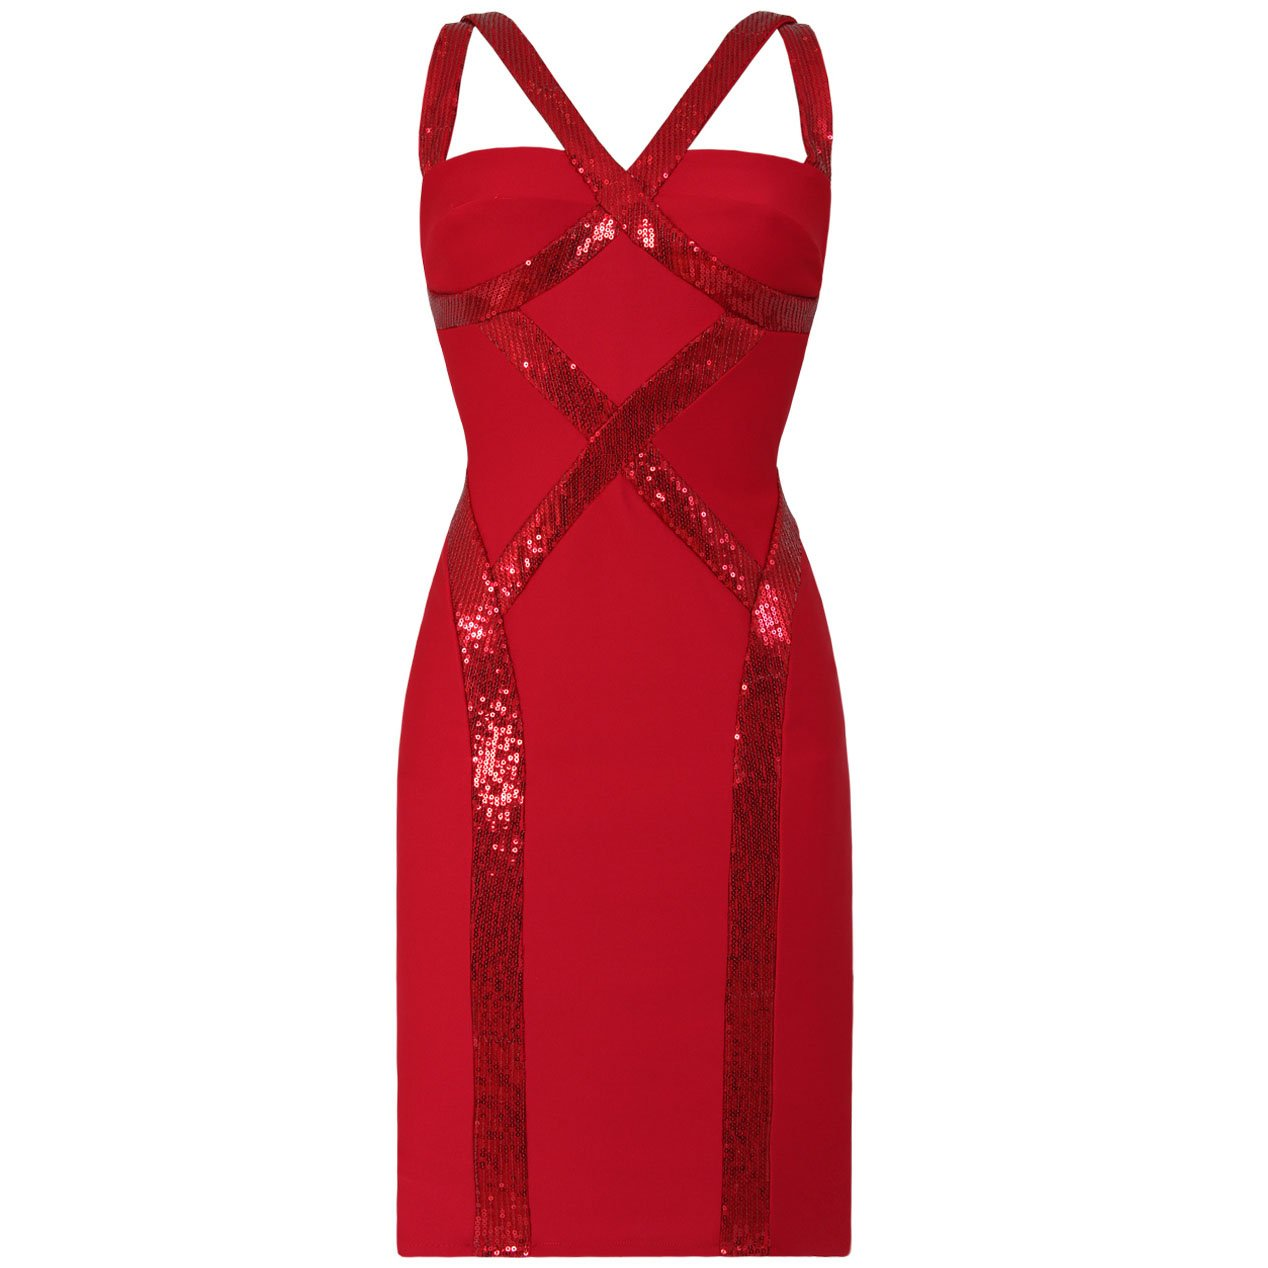 RED SEQUIN BANDAGE EVENING COCKTAIL BODYCON CLUBWEAR MINI PROM PARTY DRESS UK 10, US 6